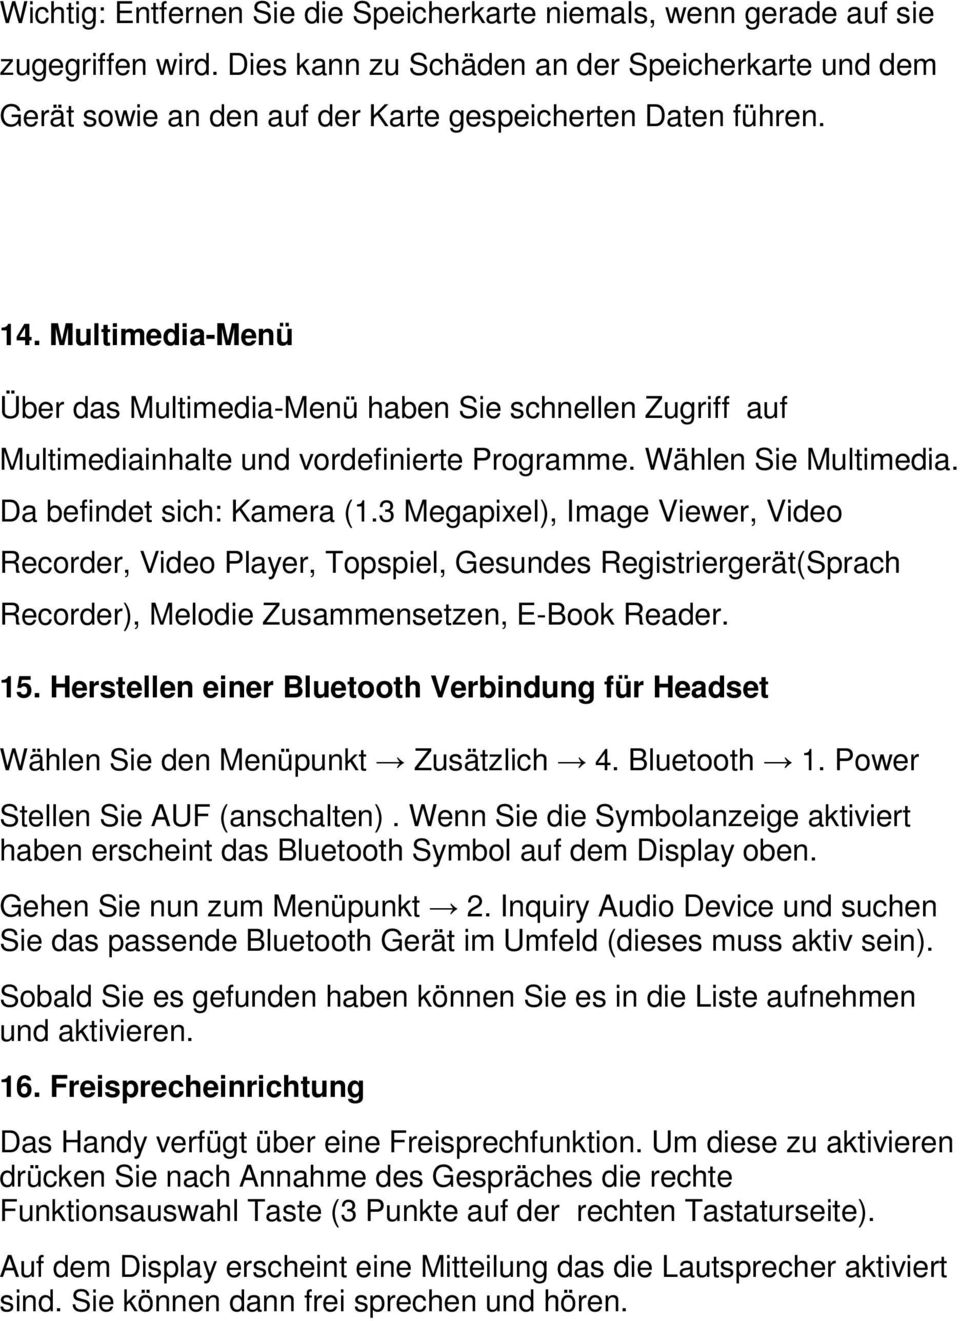 3 Megapixel), Image Viewer, Video Recorder, Video Player, Topspiel, Gesundes Registriergerät(Sprach Recorder), Melodie Zusammensetzen, E-Book Reader. 15.